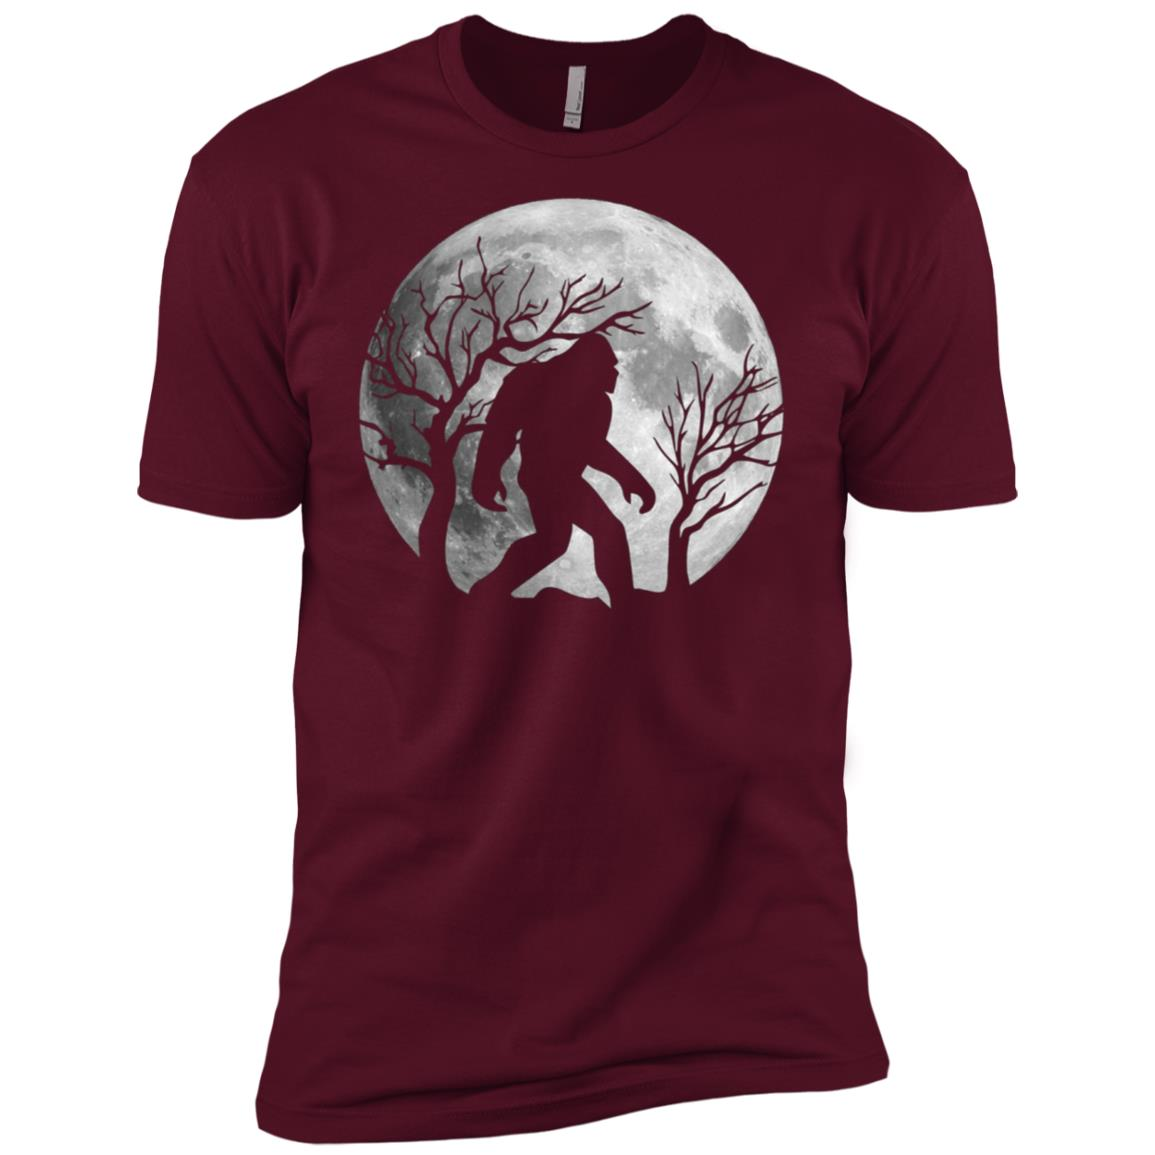 Bigfoot Bigfoot Sasquatch Full moon Yeti Funny-1 Men Short Sleeve T-Shirt